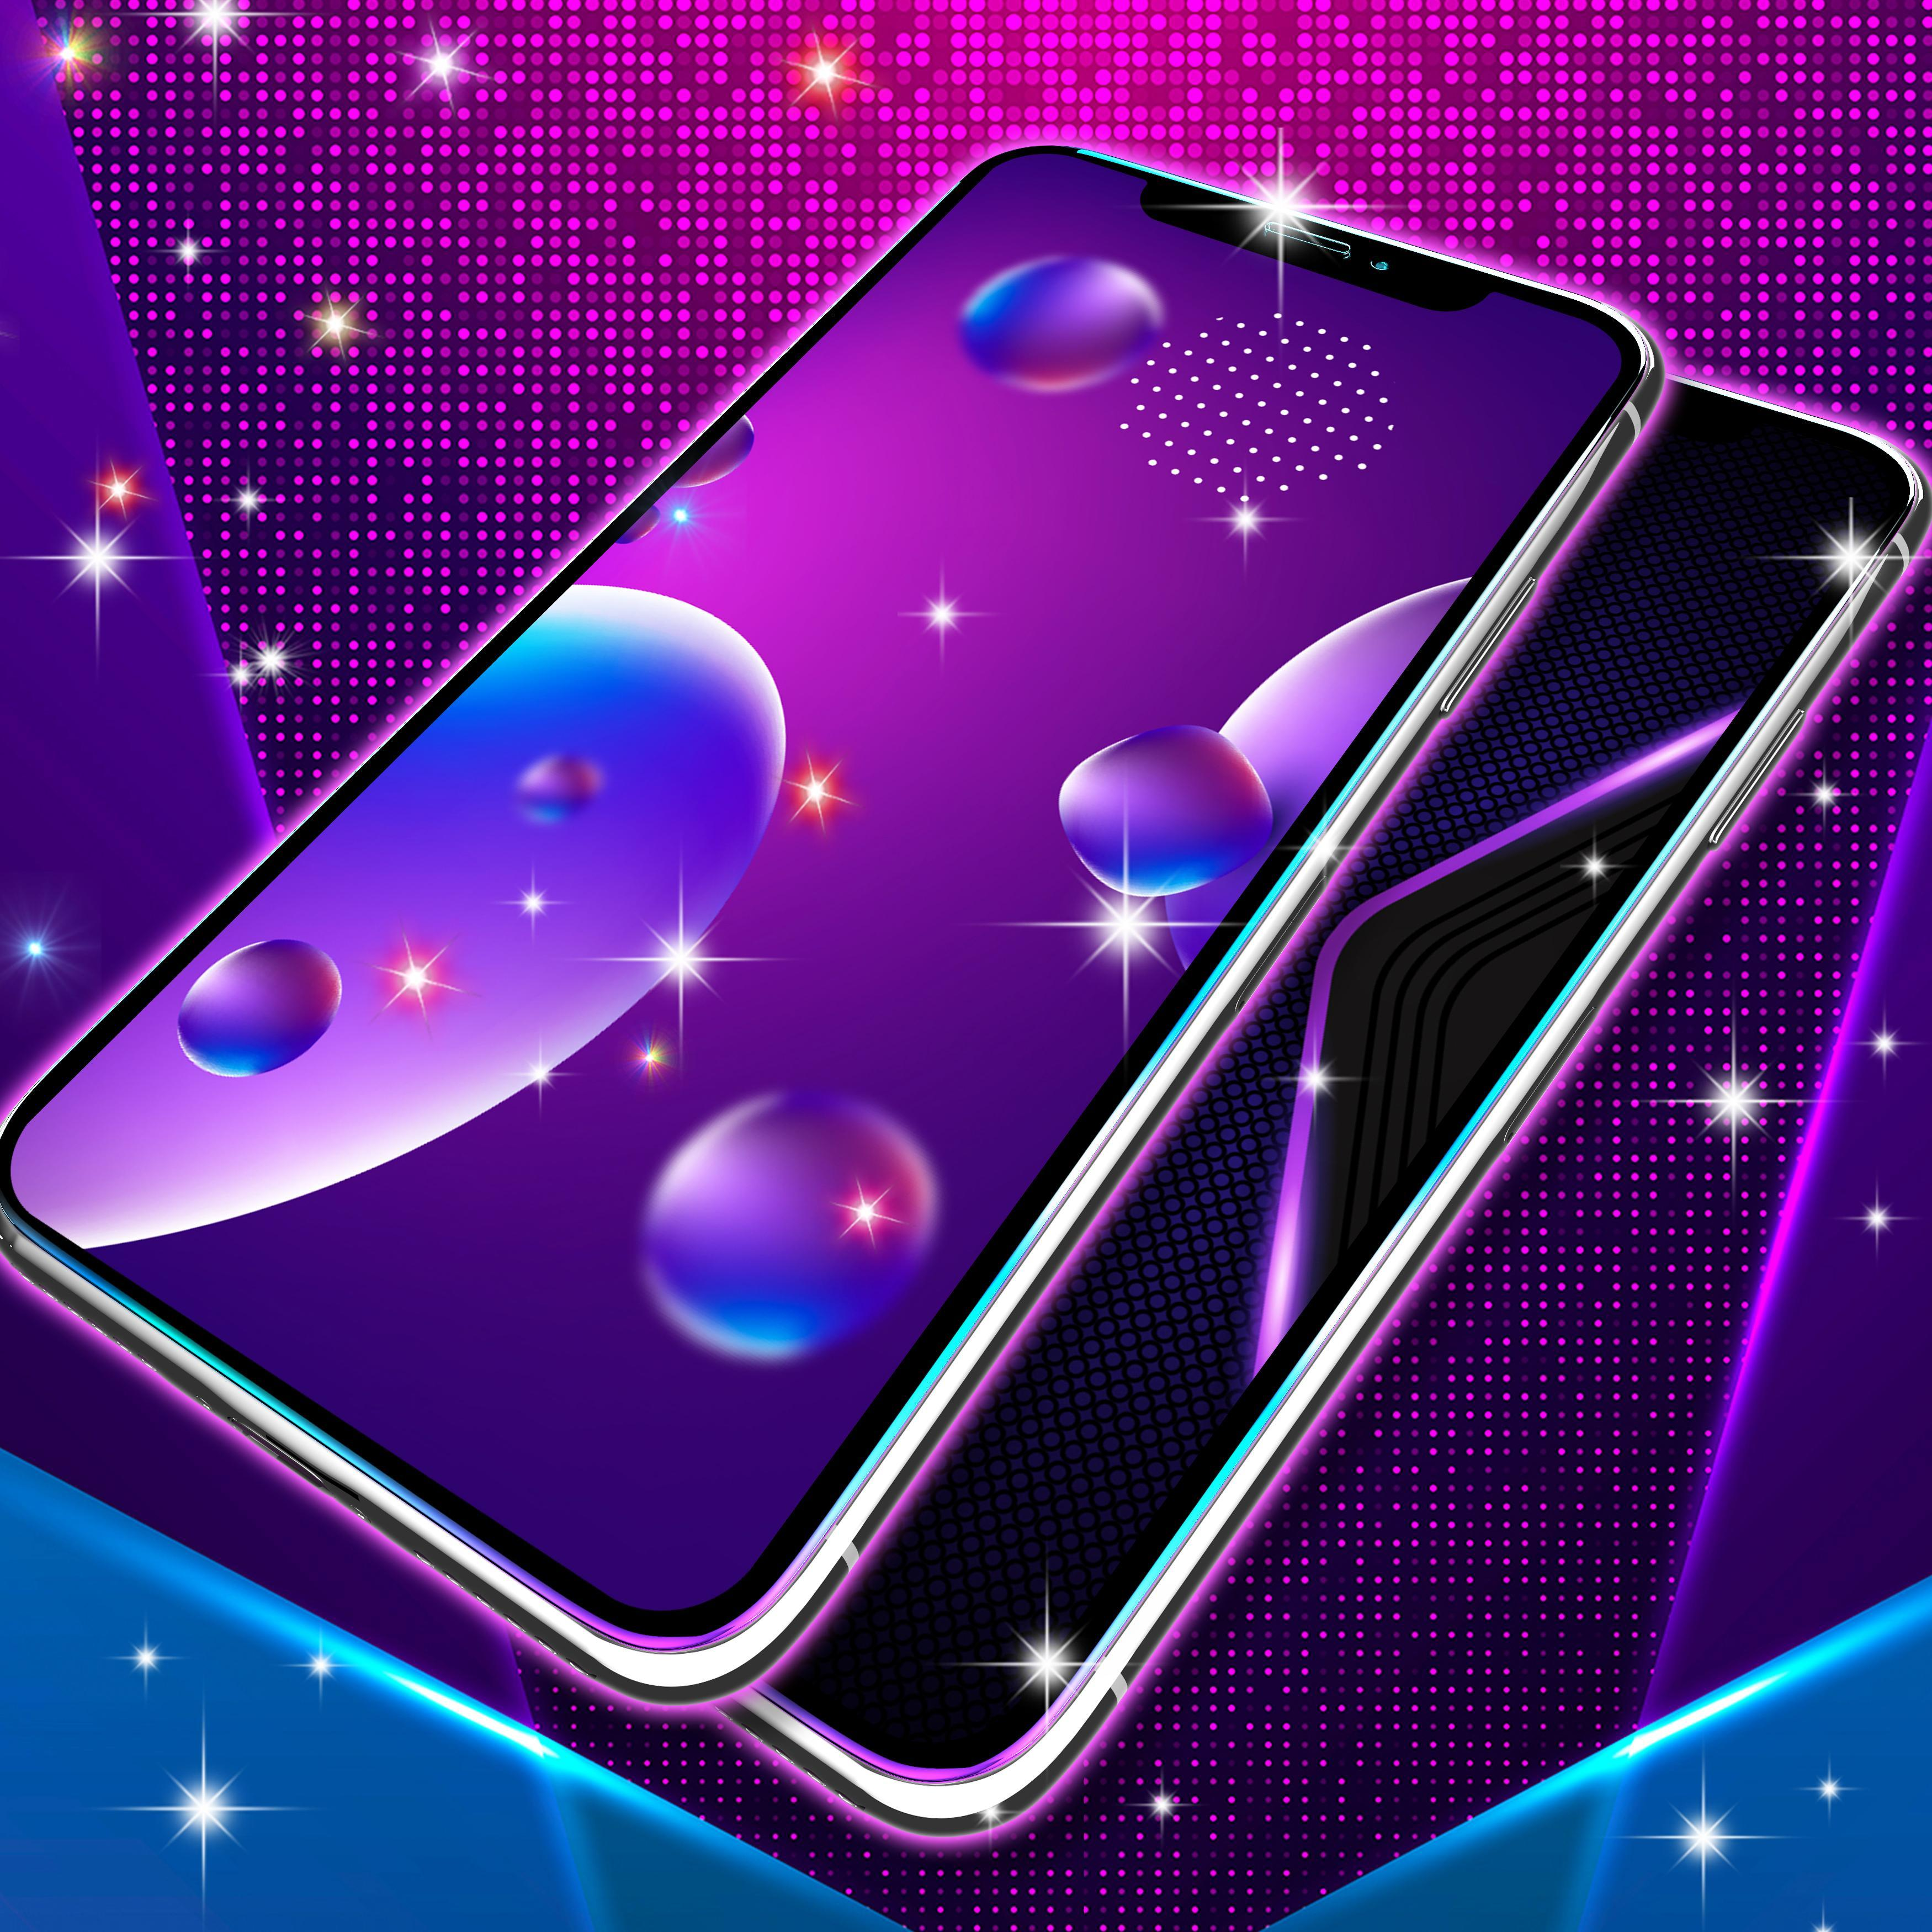 Super Live Wallpapers 3D For Android APK Download